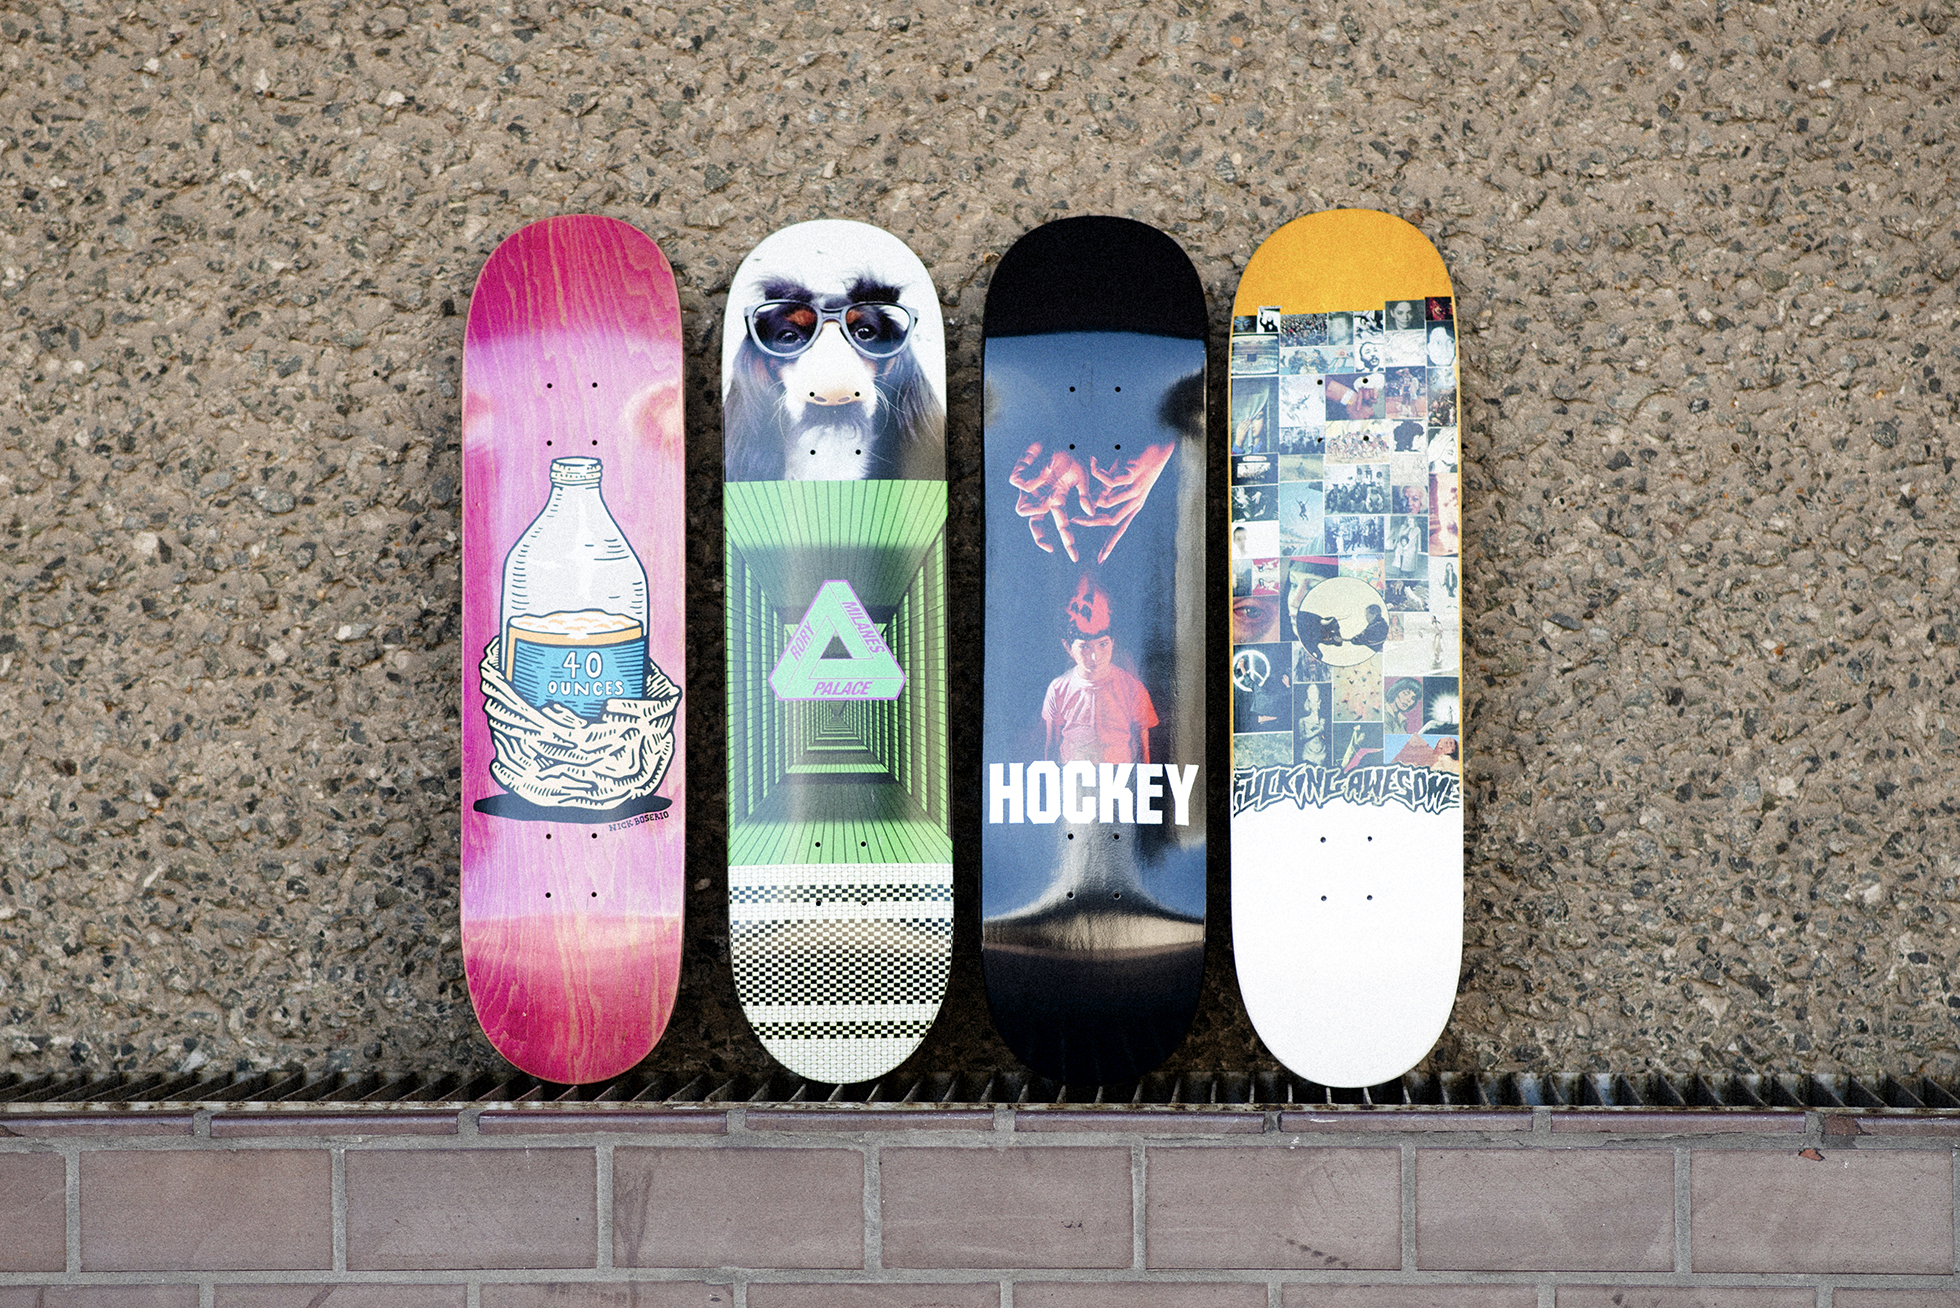 Win Fucking Awesome, Hockey, Palace and Polar Skate Co. decks.